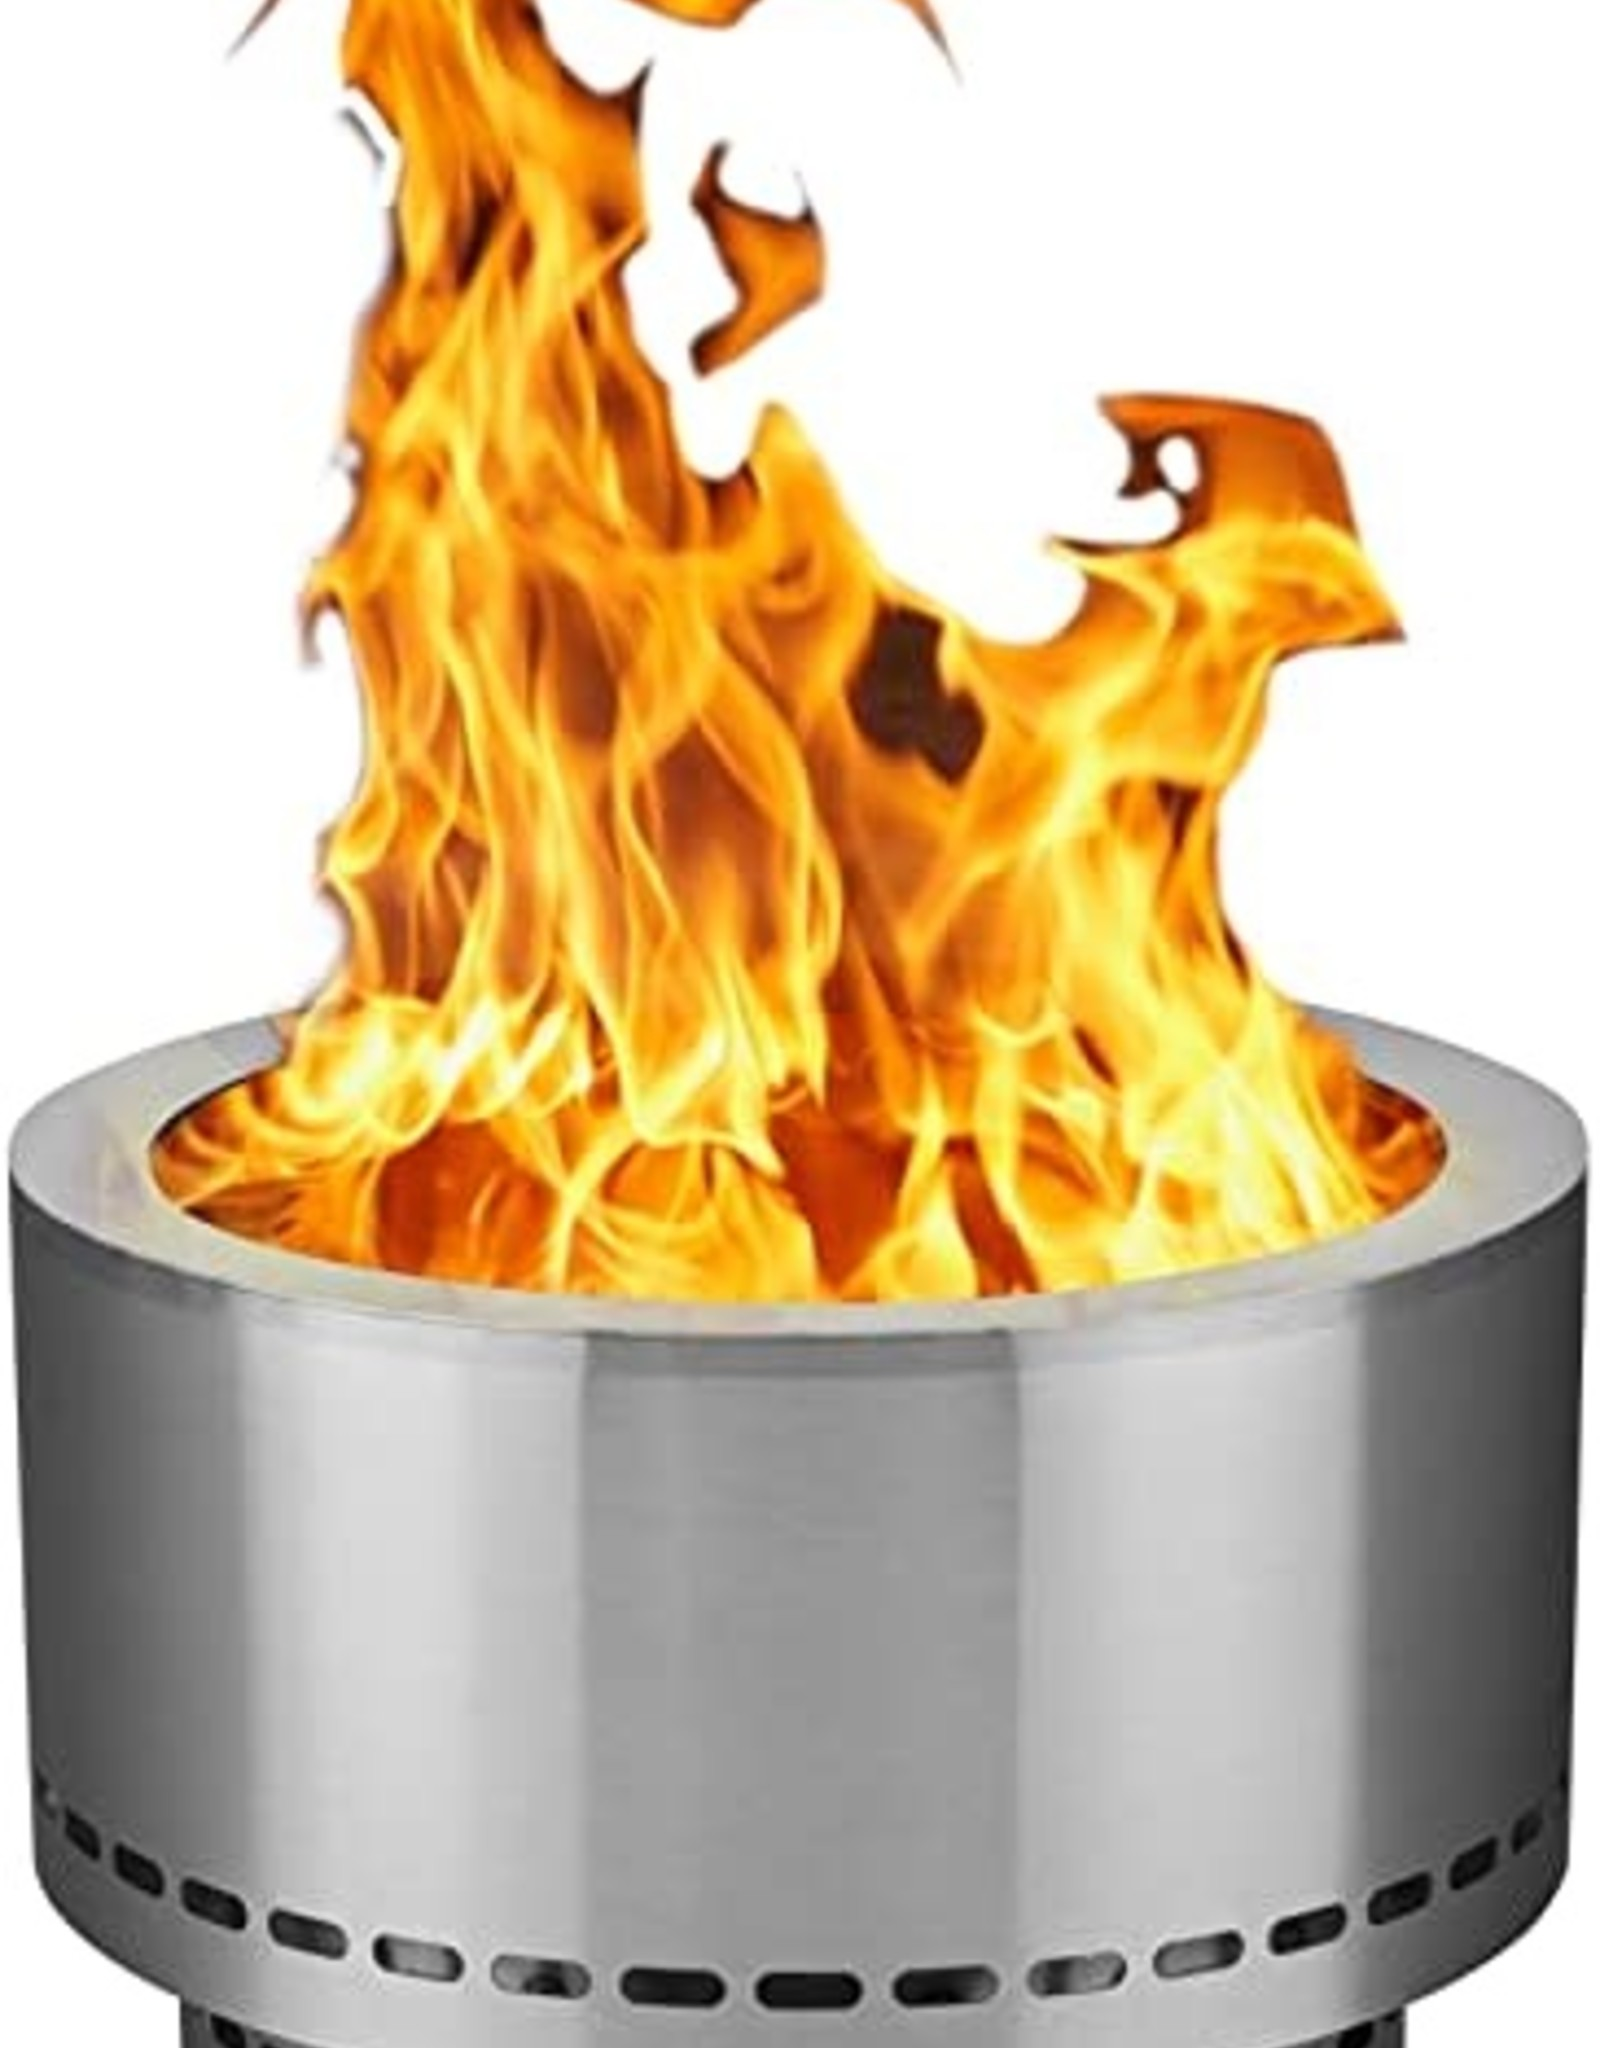 "Flame Genie Flame Genie Inferno 19"" Wood Pellet Fire Pit FG-19-SS"